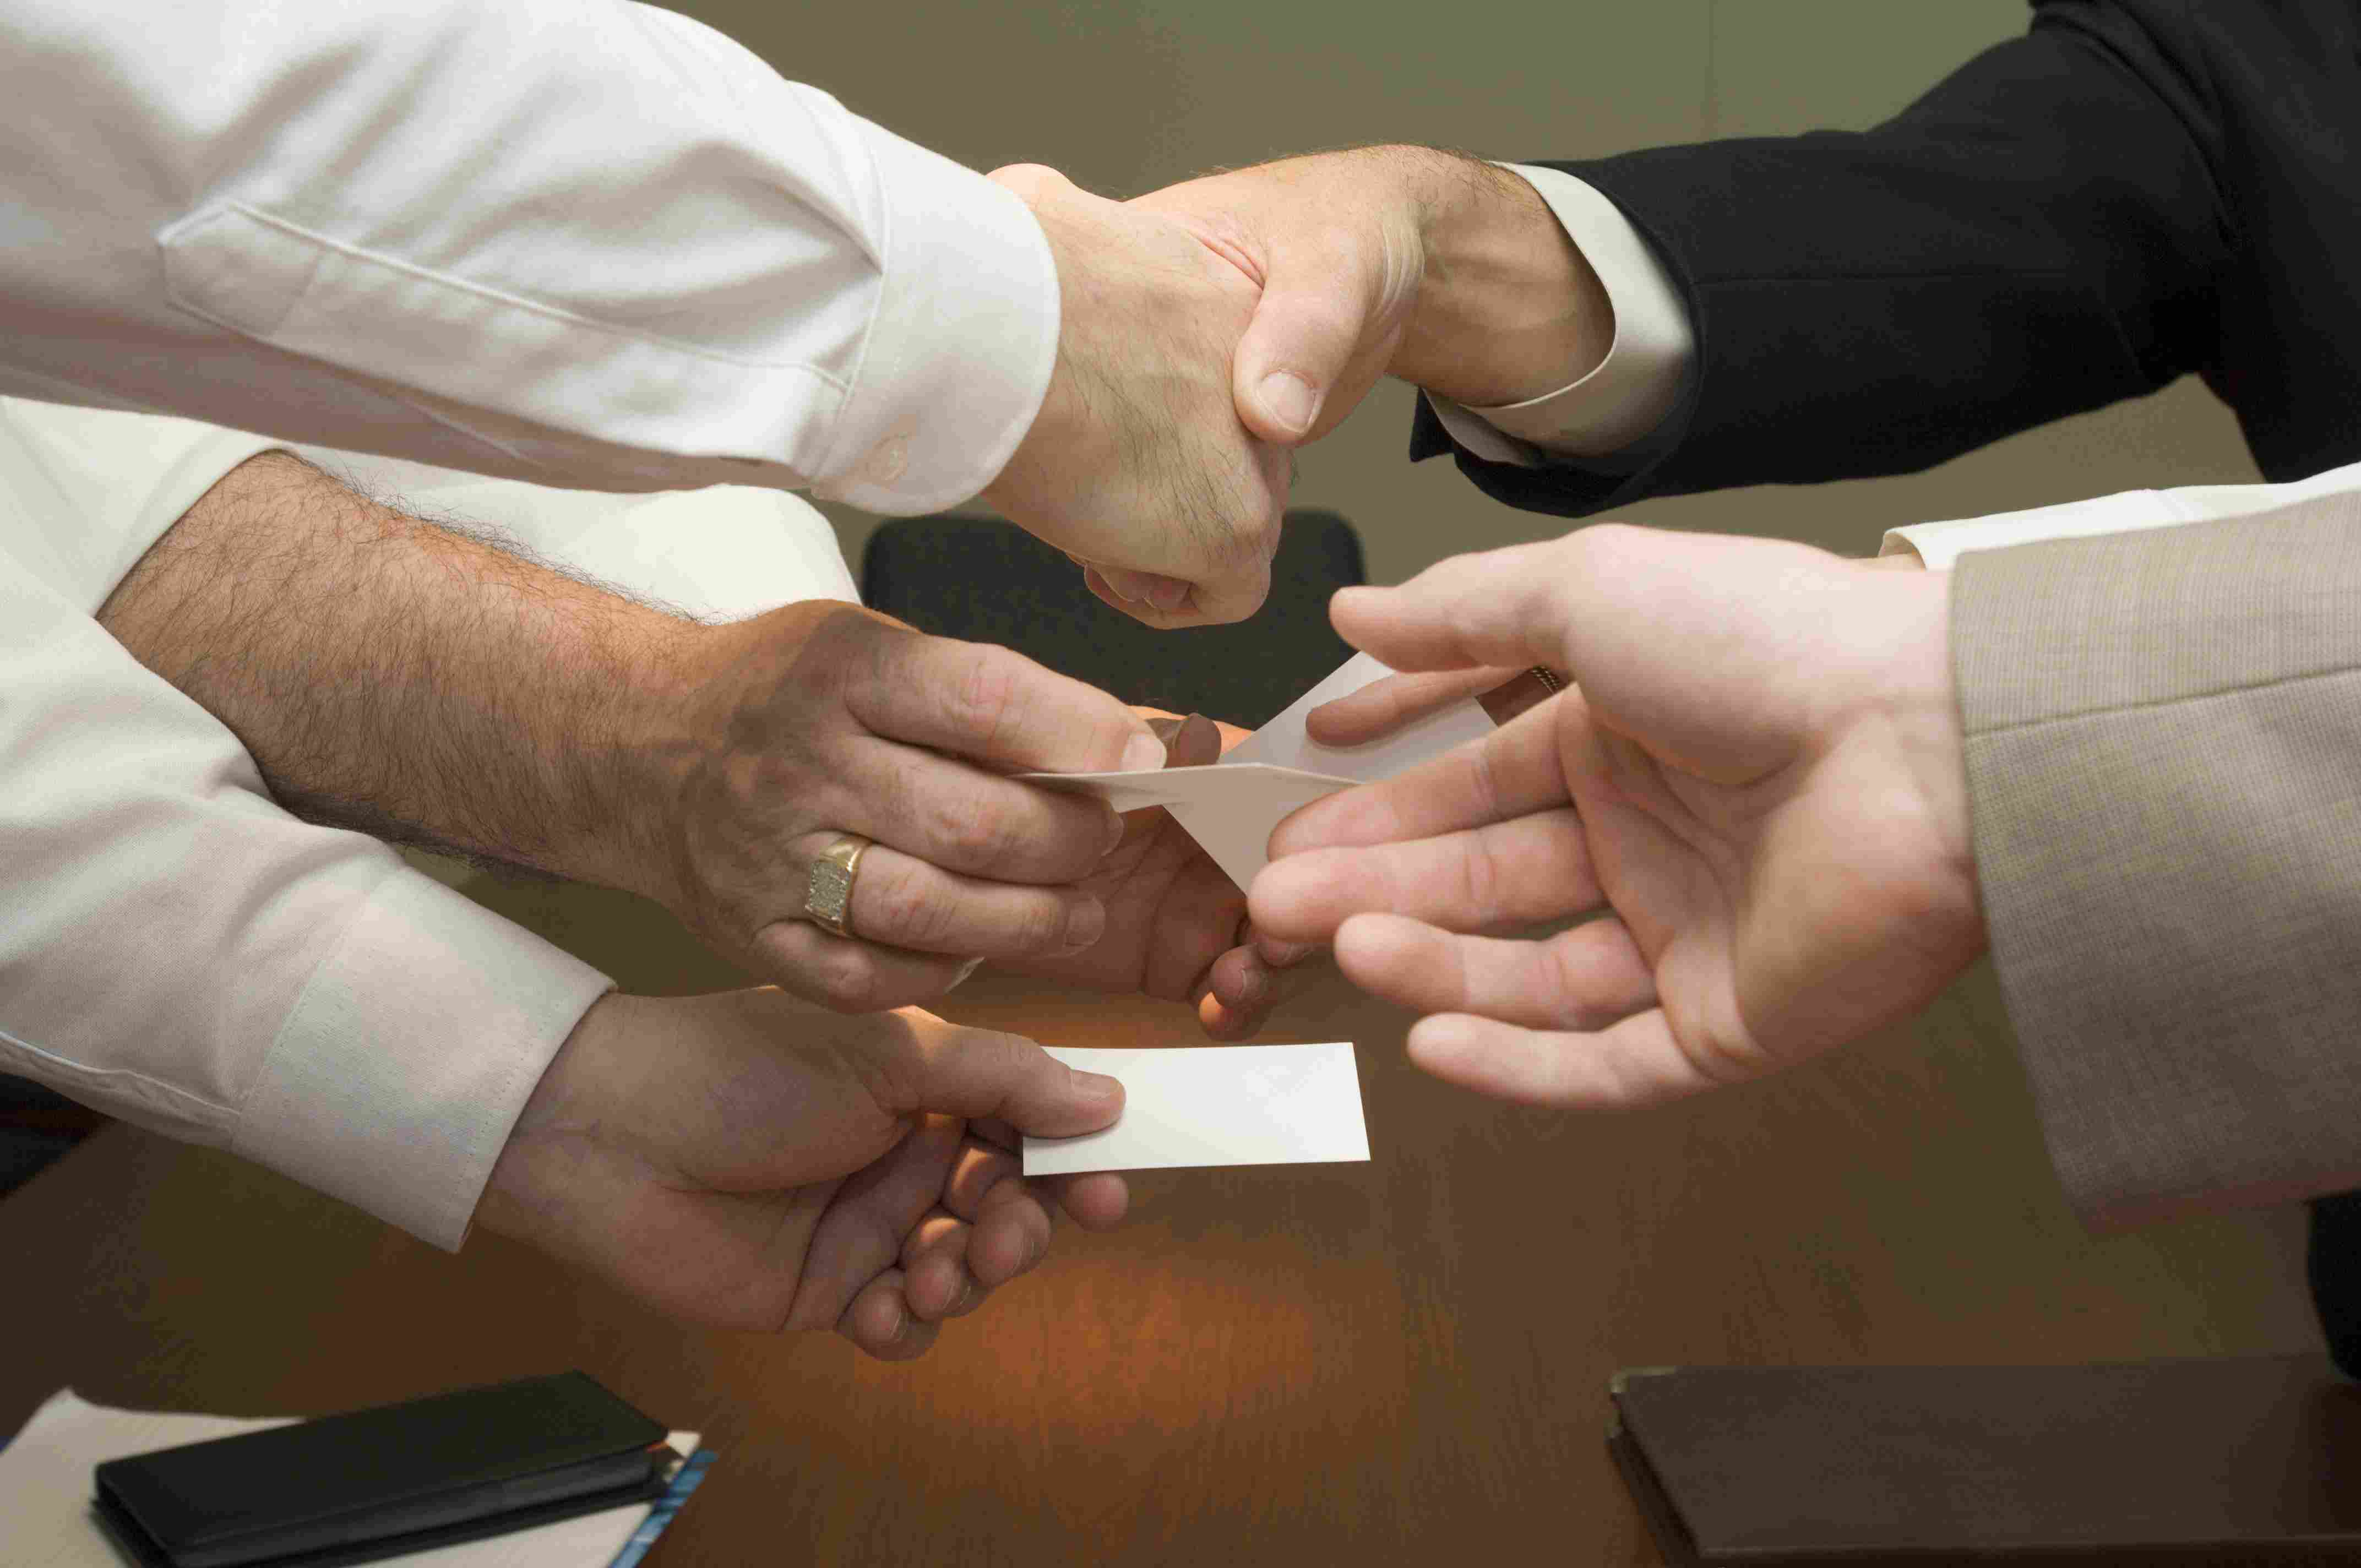 Multiple hands exchanging business information